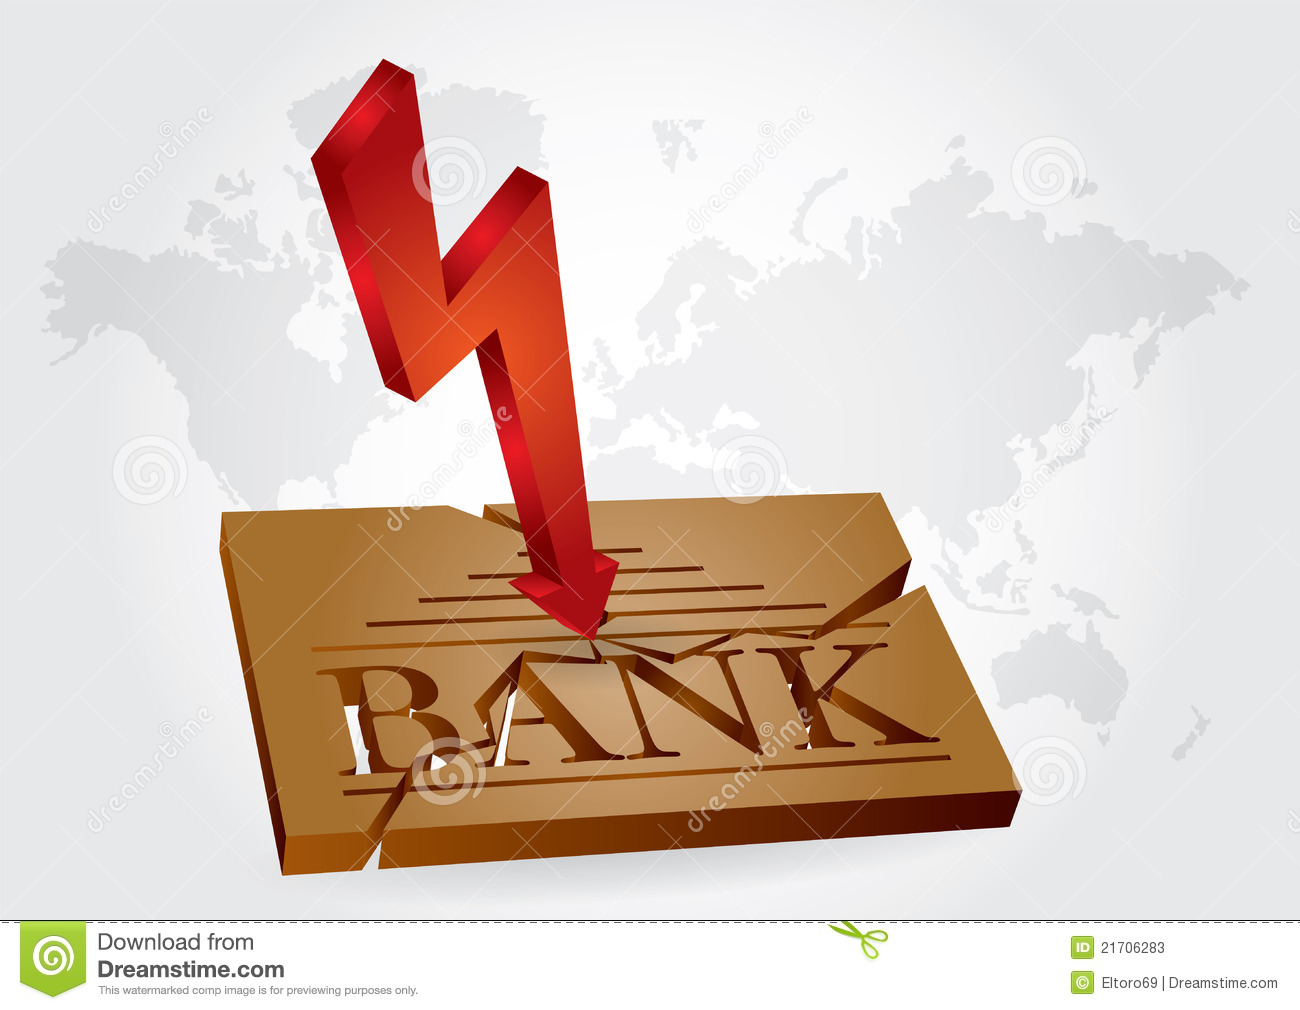 investment banking failures in the uk Regulation reshaping the investment banking industry  the sizeable losses incurred and the subsequent failures and taxpayer bailouts shook confidence in the .